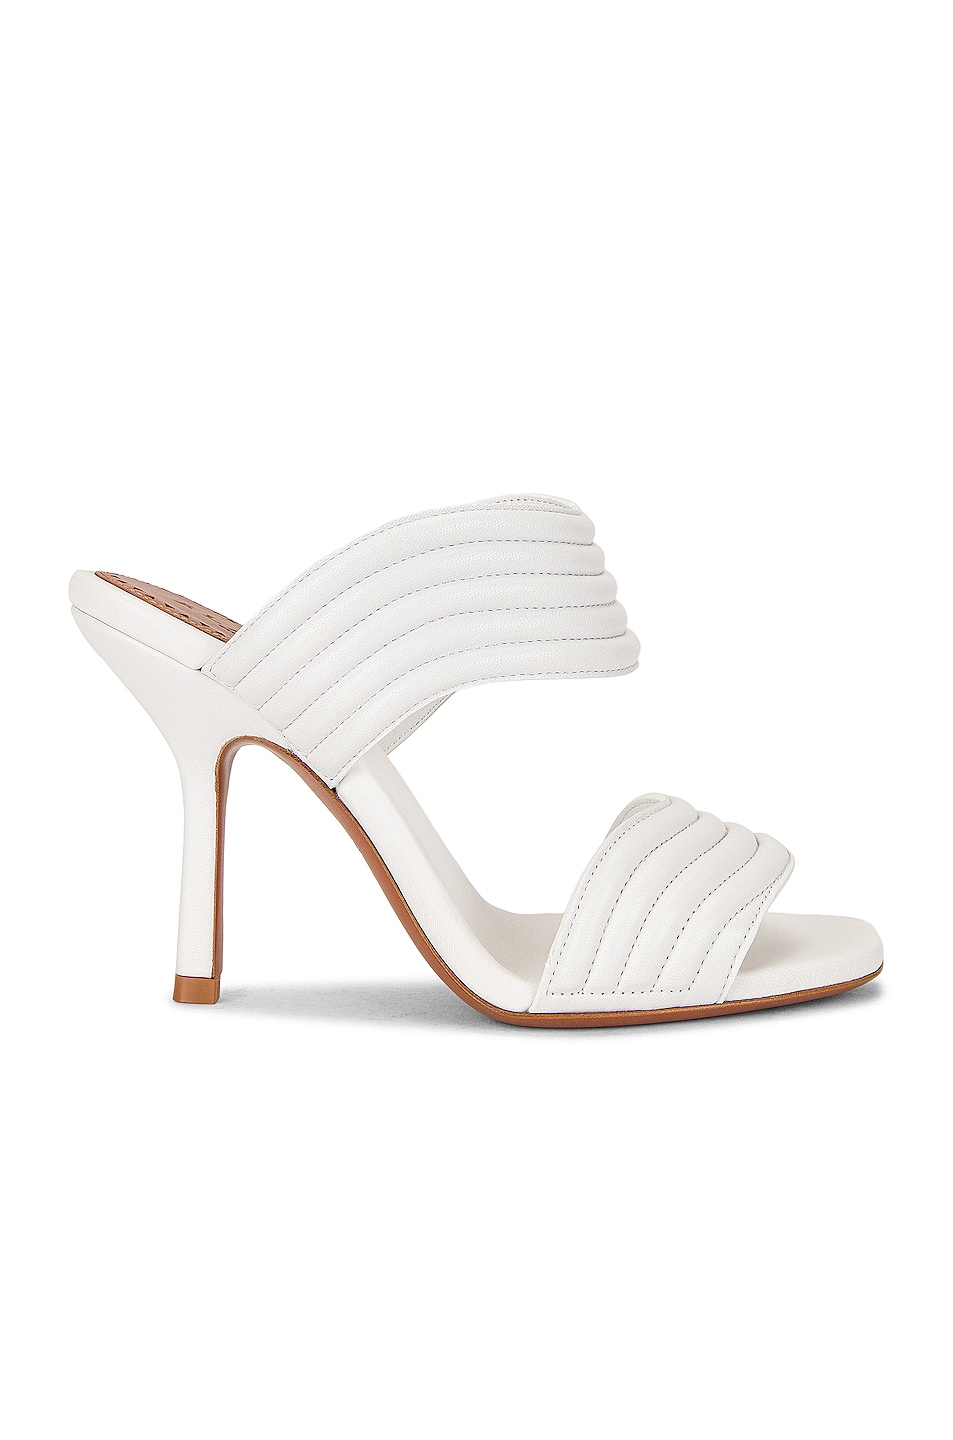 Image 1 of ALAÏA Leather Mules in Blanc Casse